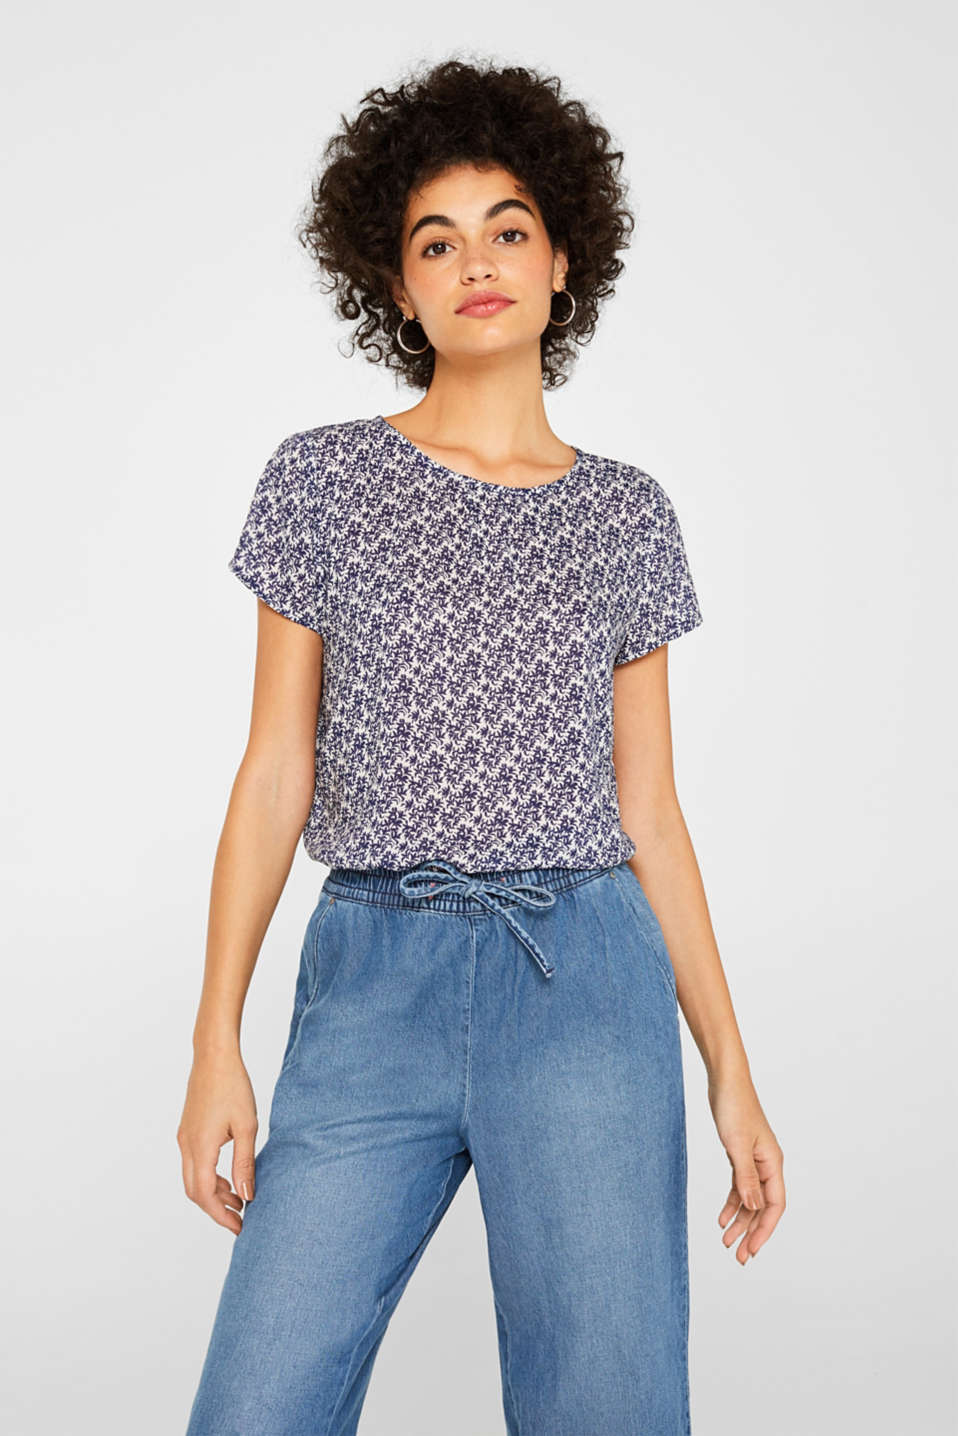 edc - Blouse top with a fashionable print